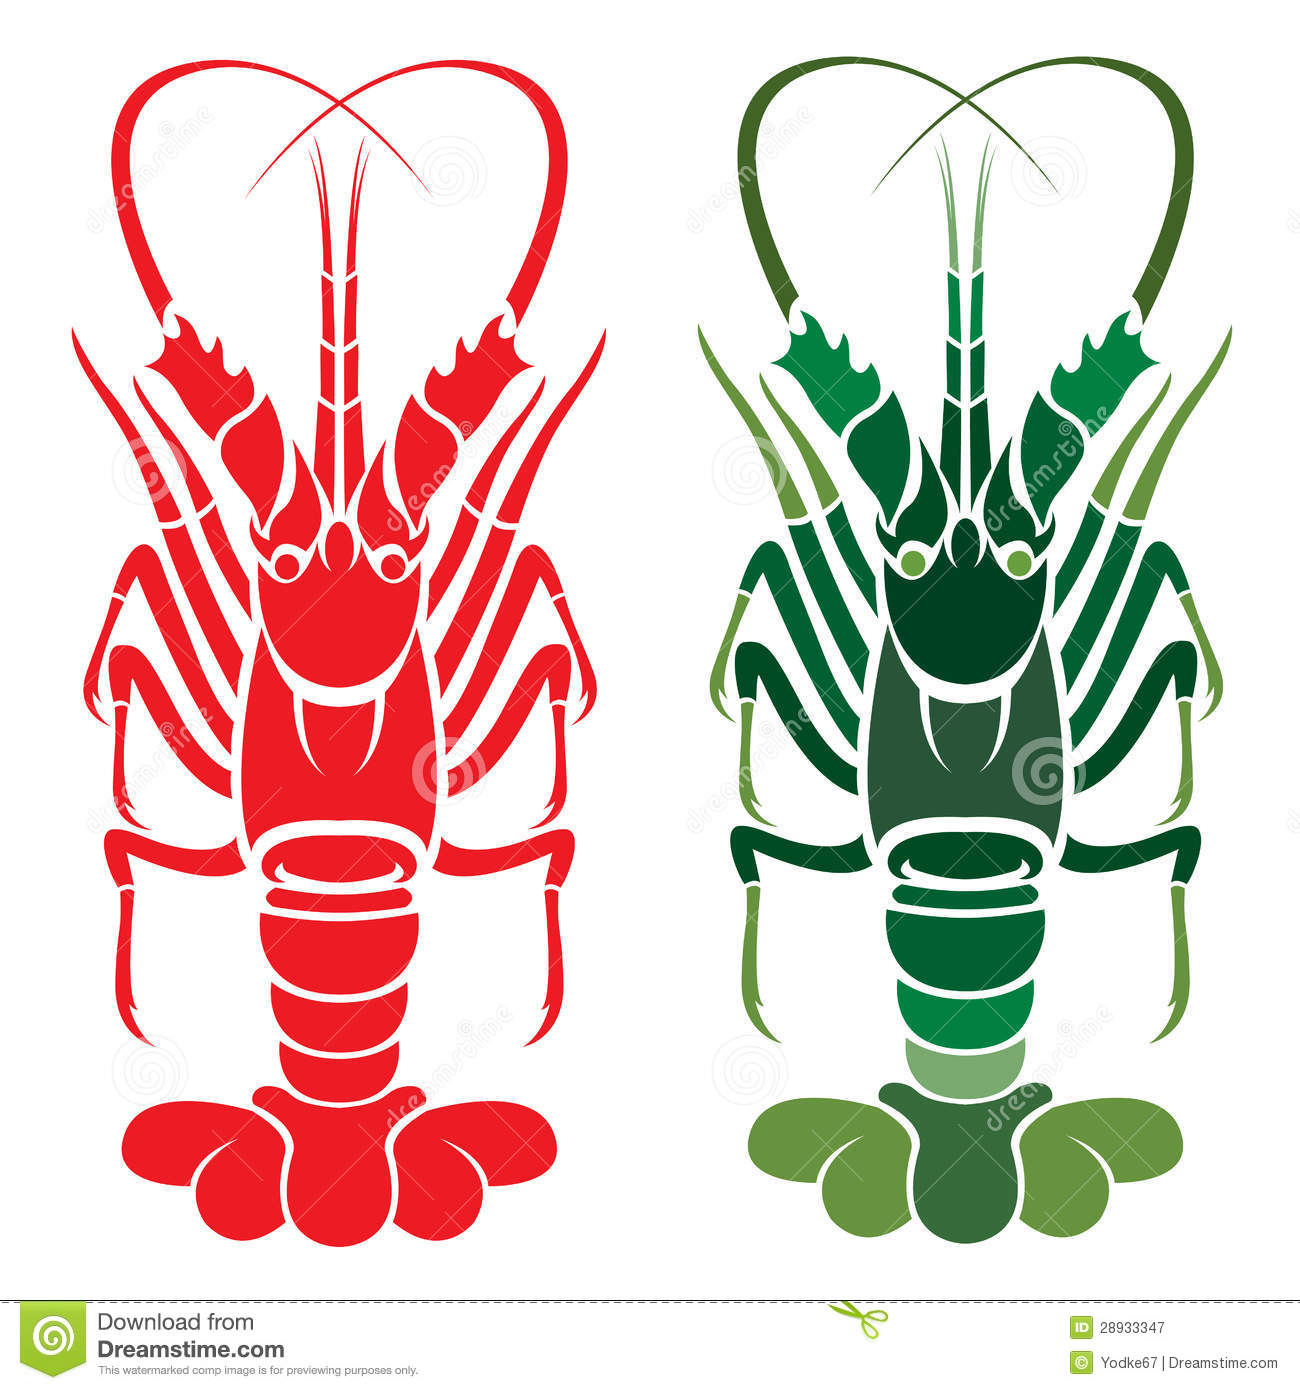 Spiny Lobster Silhouette.